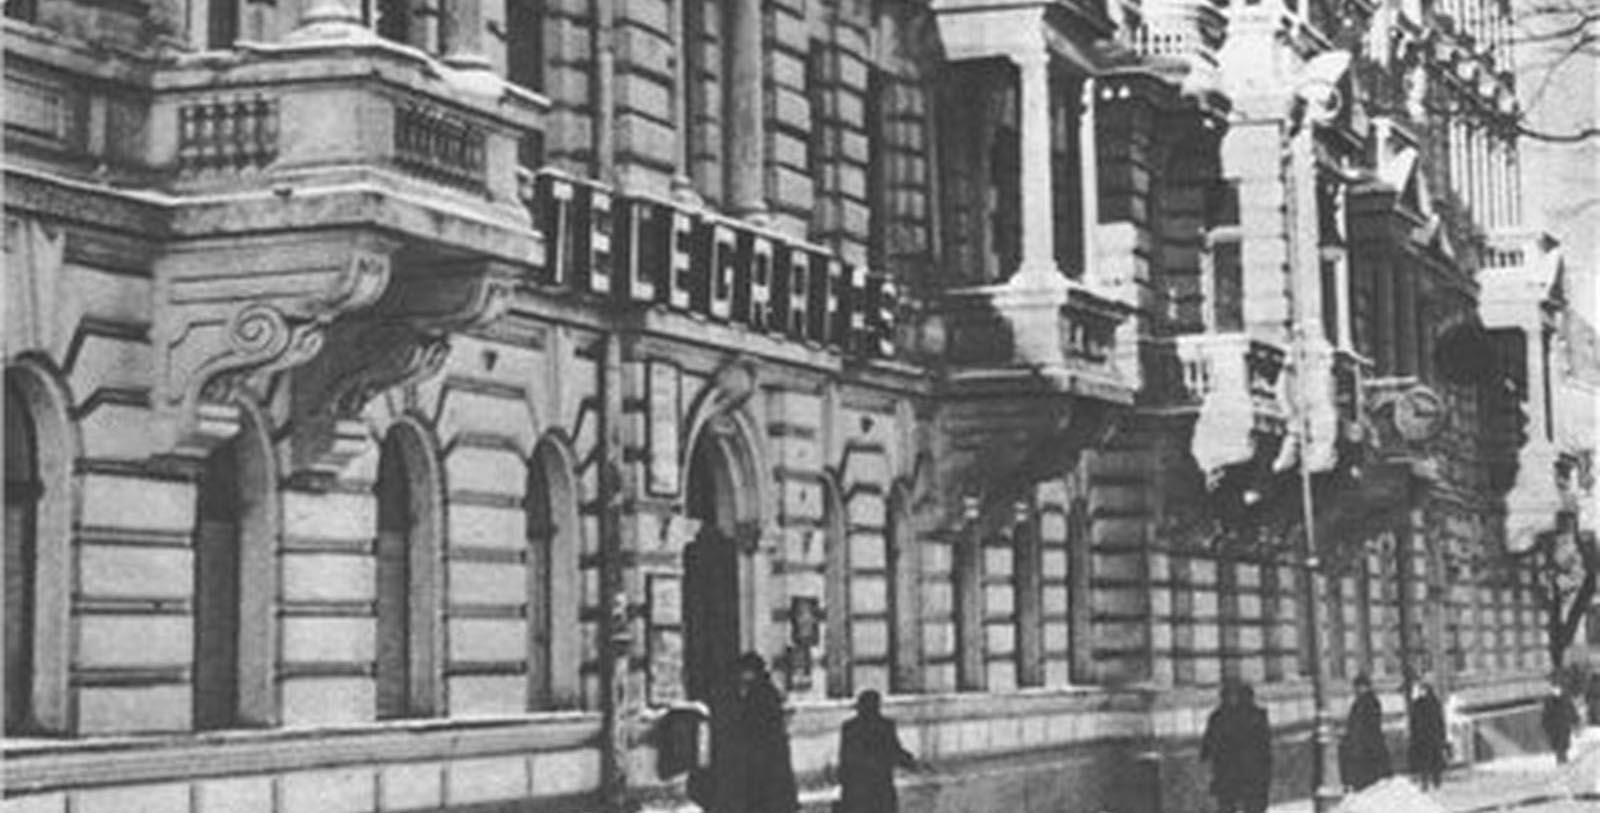 Historic Image of Hotel Exterior Kempinski Hotel Cathedral Square, 1900, Member of Historic Hotels Worldwide, in Vilnius, Lithuania, Discover